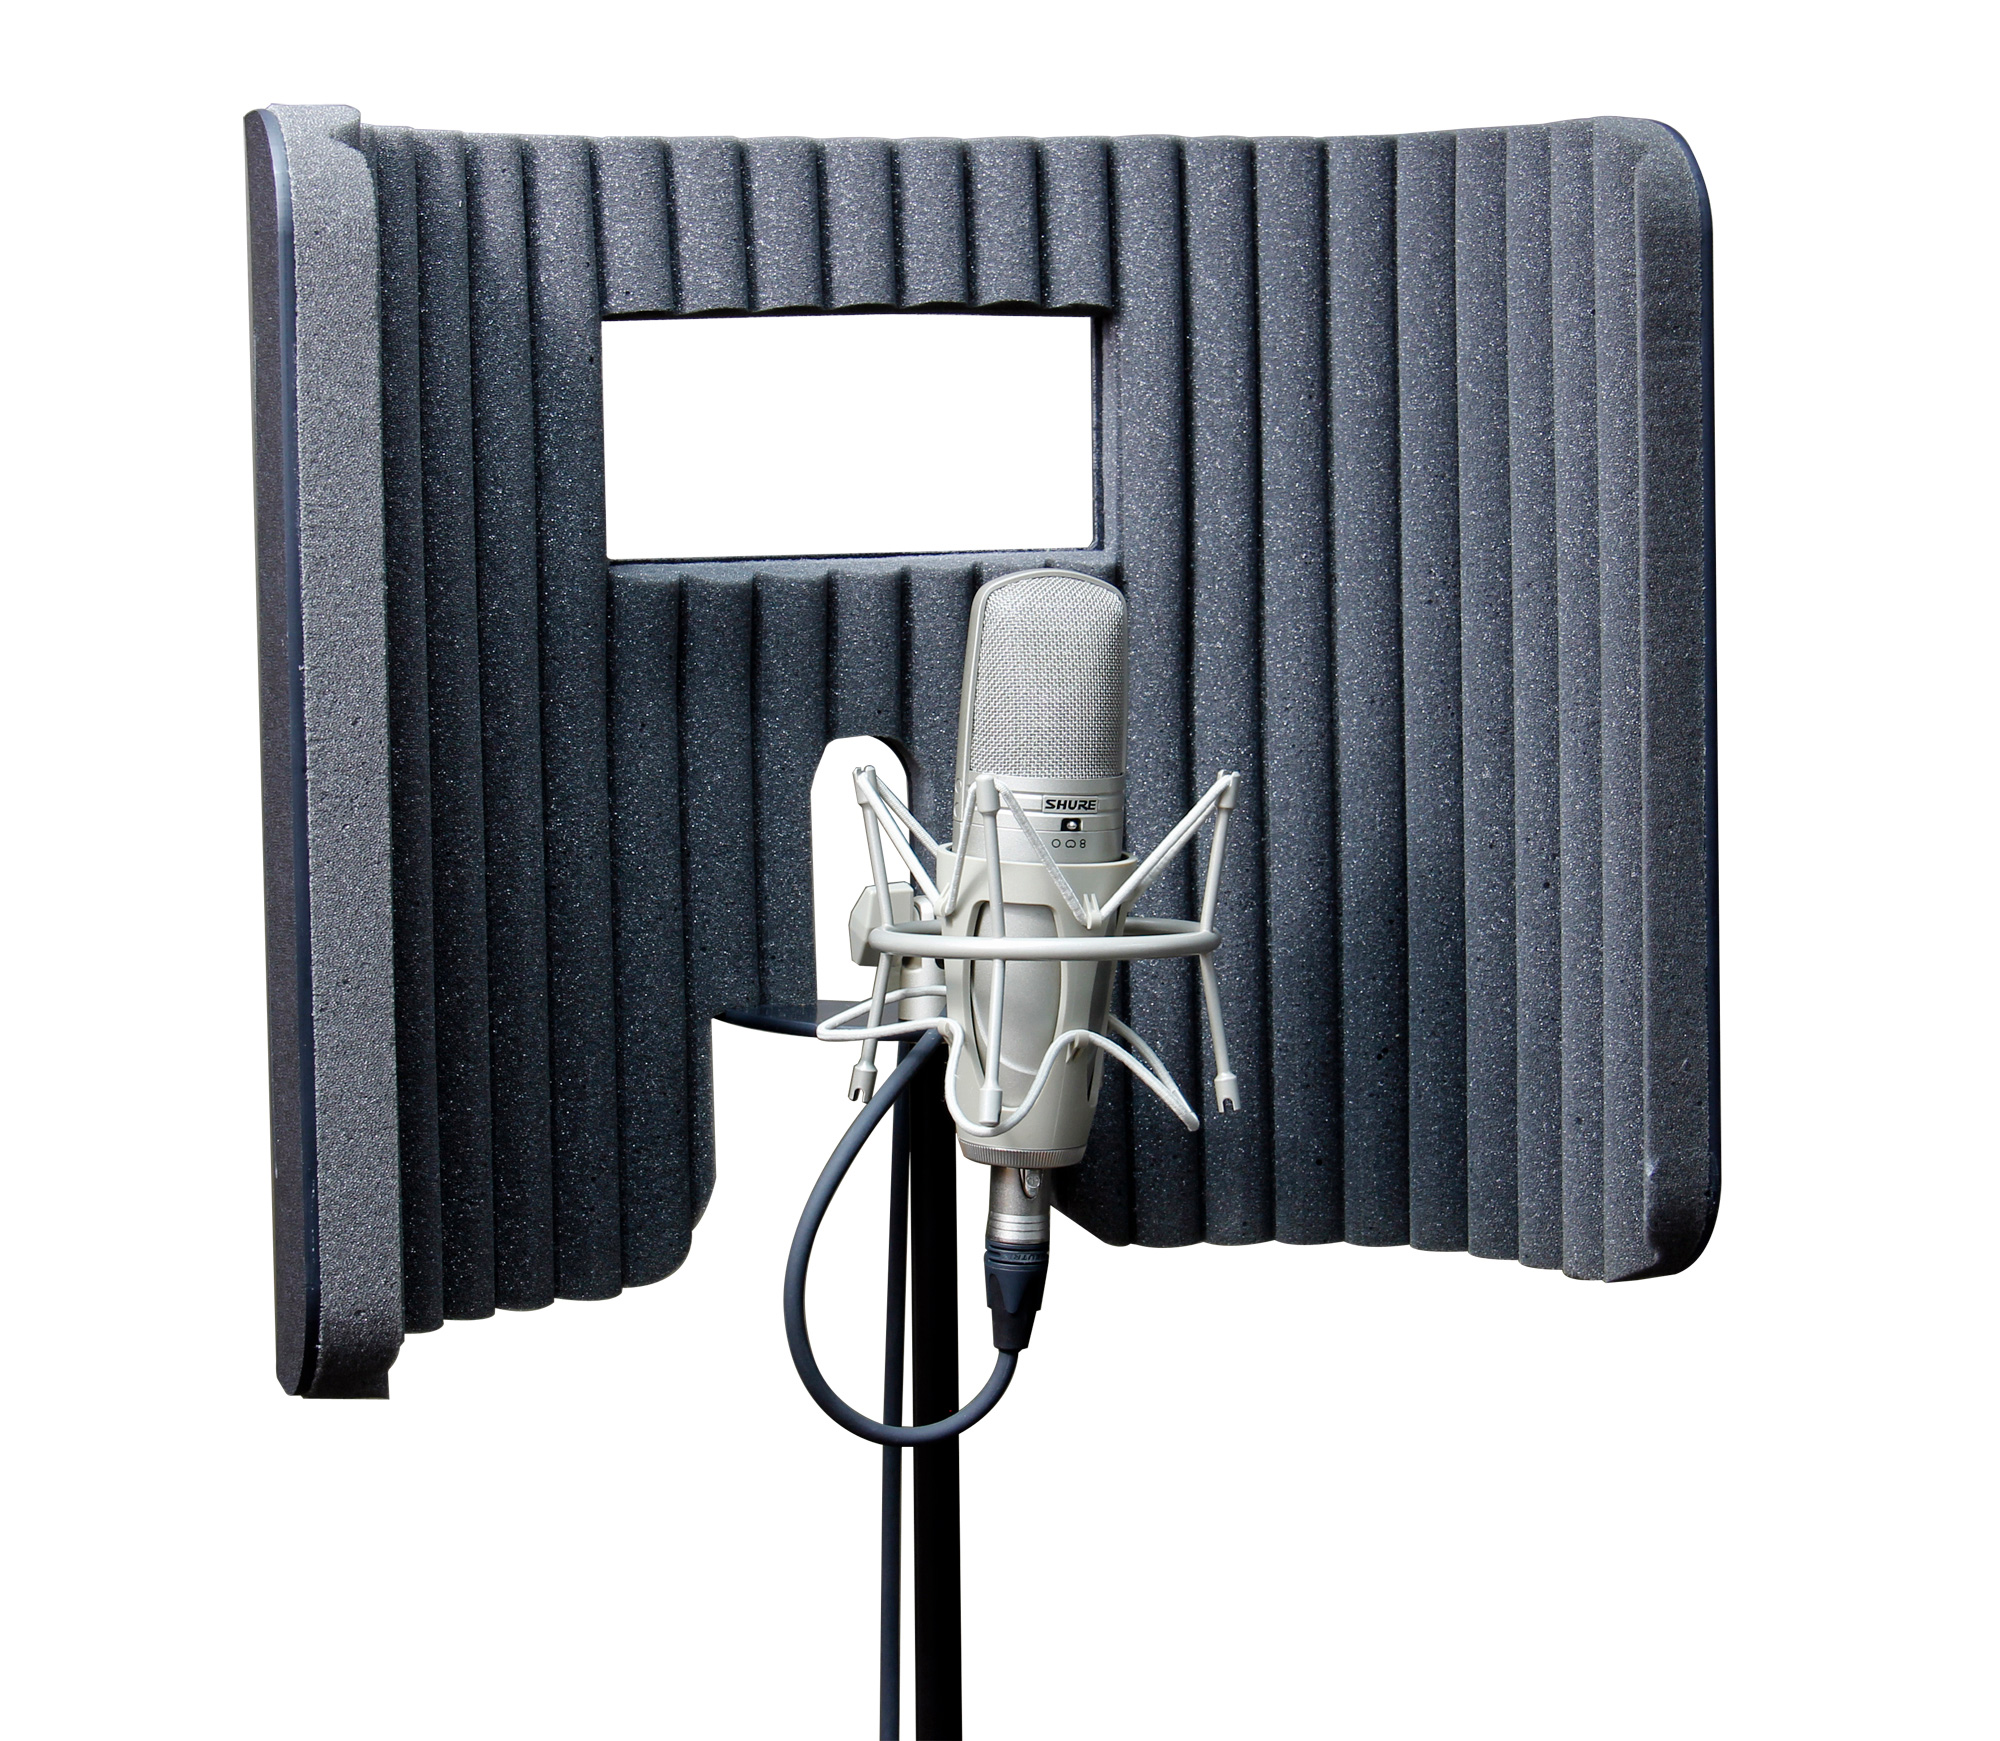 primacoustic voxguard vu nearfield absorber mic stand sound booth. Black Bedroom Furniture Sets. Home Design Ideas